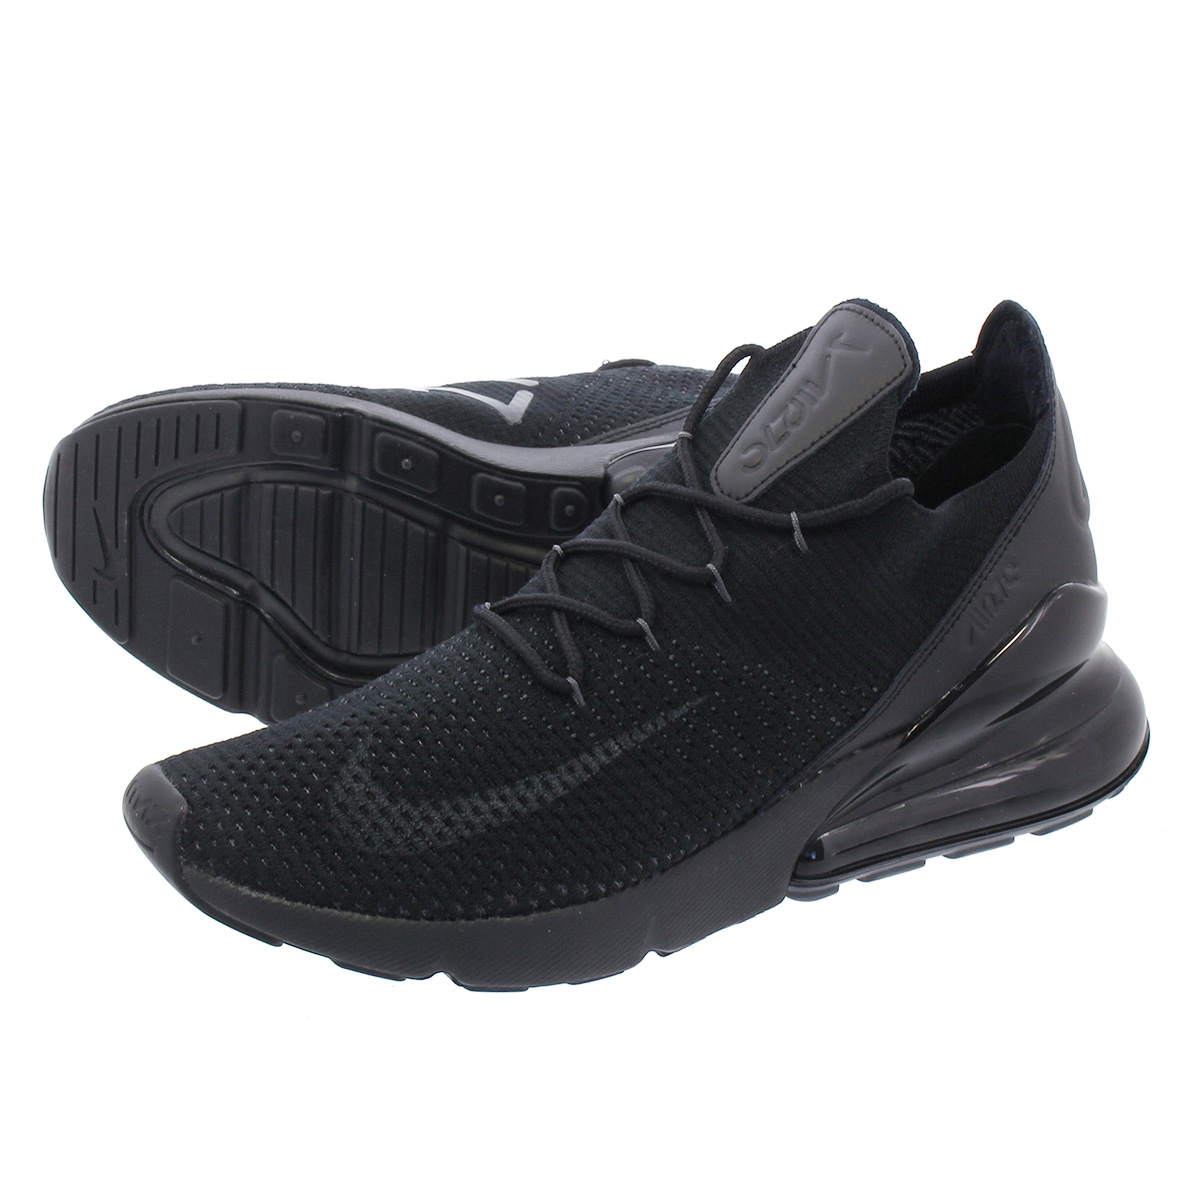 3ea3d15d829f7 NIKE AIR MAX 270 FLYKNIT Kie Ney AMAX 270 fried food knit BLACK ANTHRACITE  ao1023-005